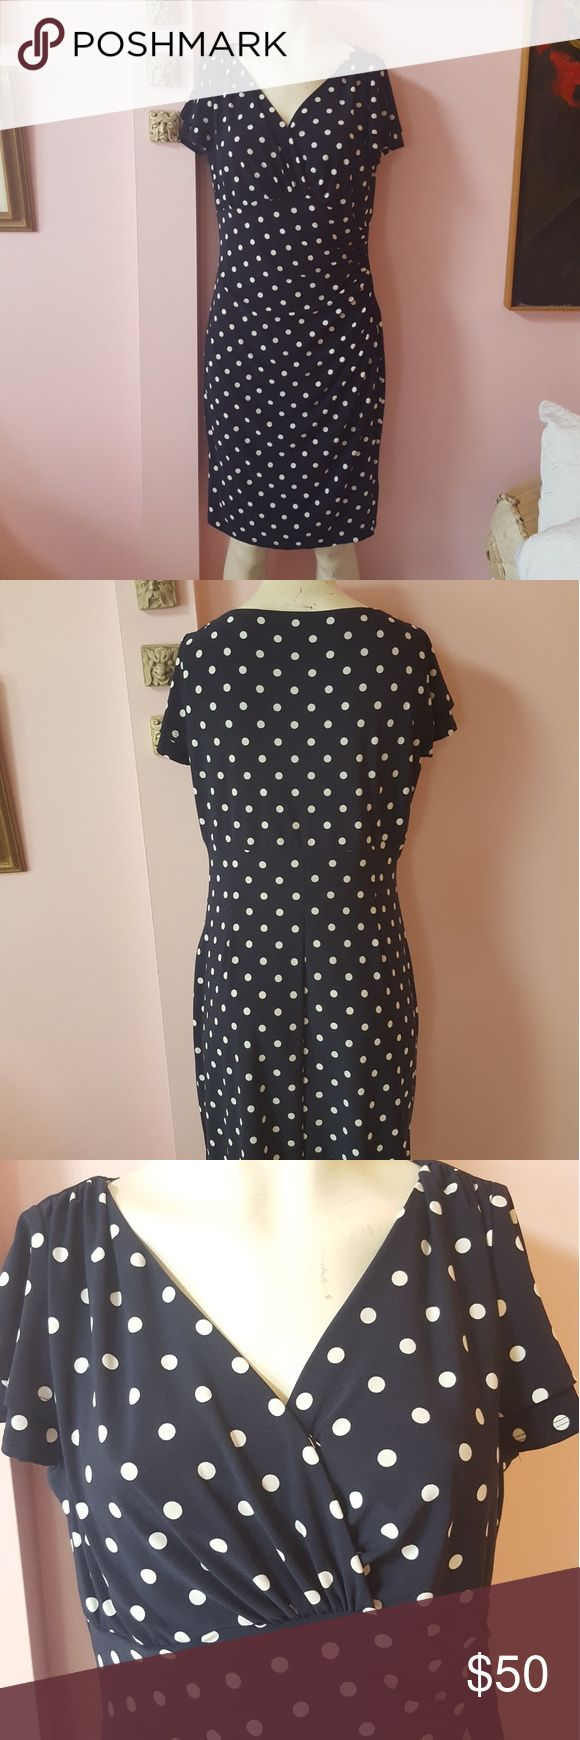 Lauren by Ralph Lauren polka dot dress Lauren by Ralph Lauren polka dot dress This dress gathers on the side looks great on navy blue and white the length is a midi Size 14 petite Perfect for a night out or the office Lauren Ralph Lauren Dresses Midi